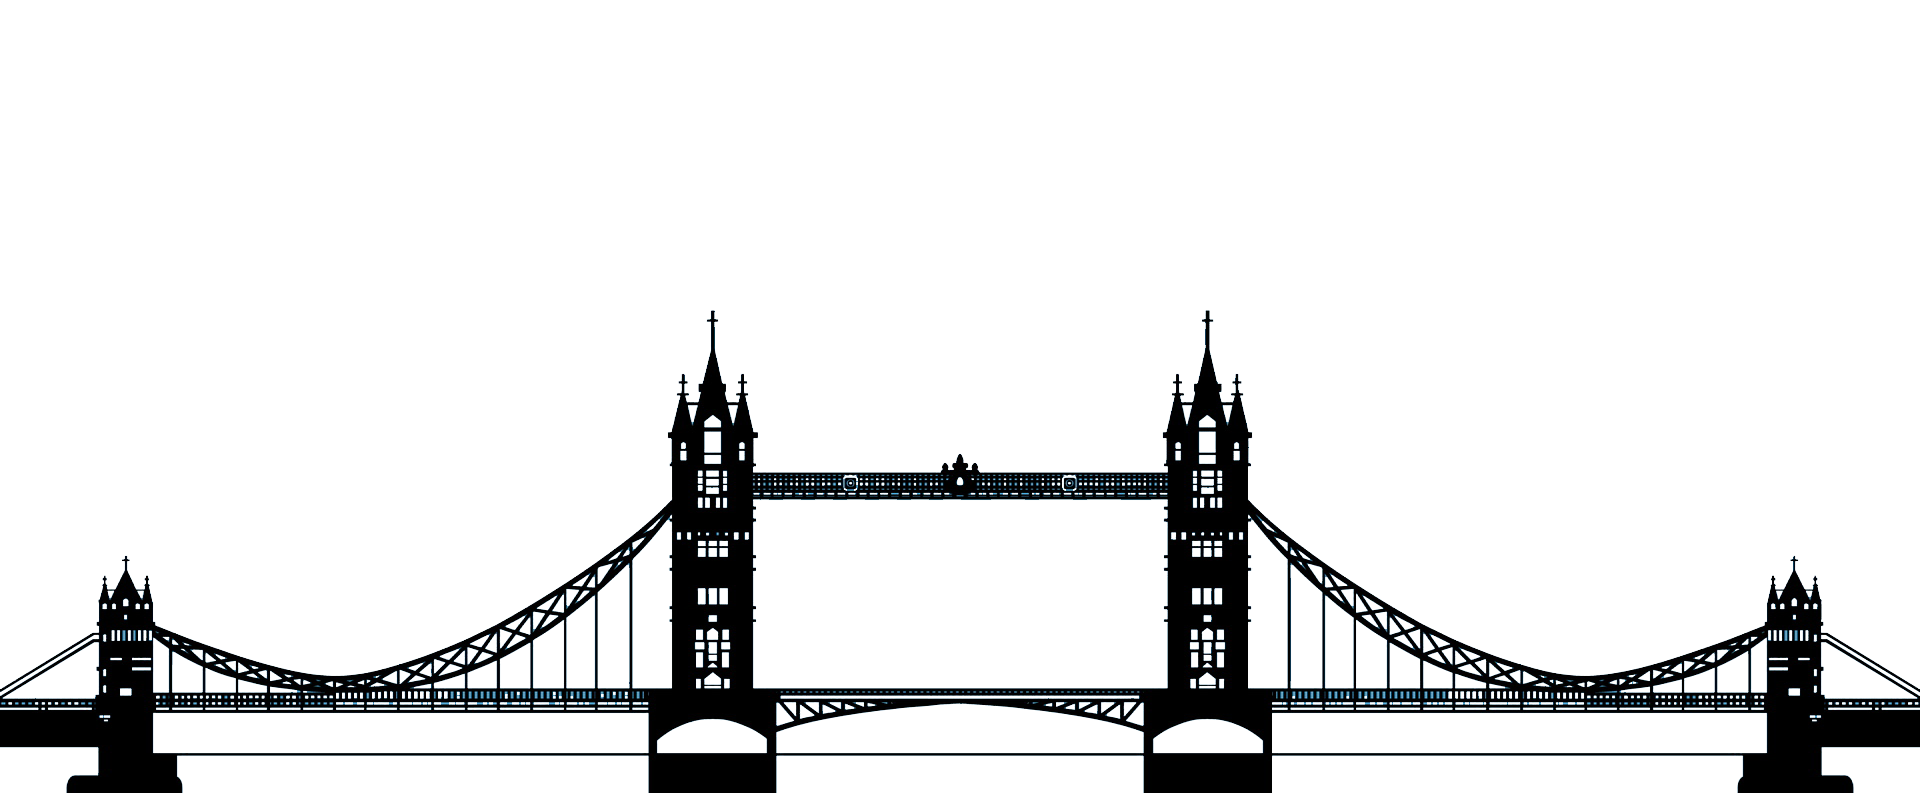 1920x793 Tower Bridge Wall Decal Shelf Wallpaper